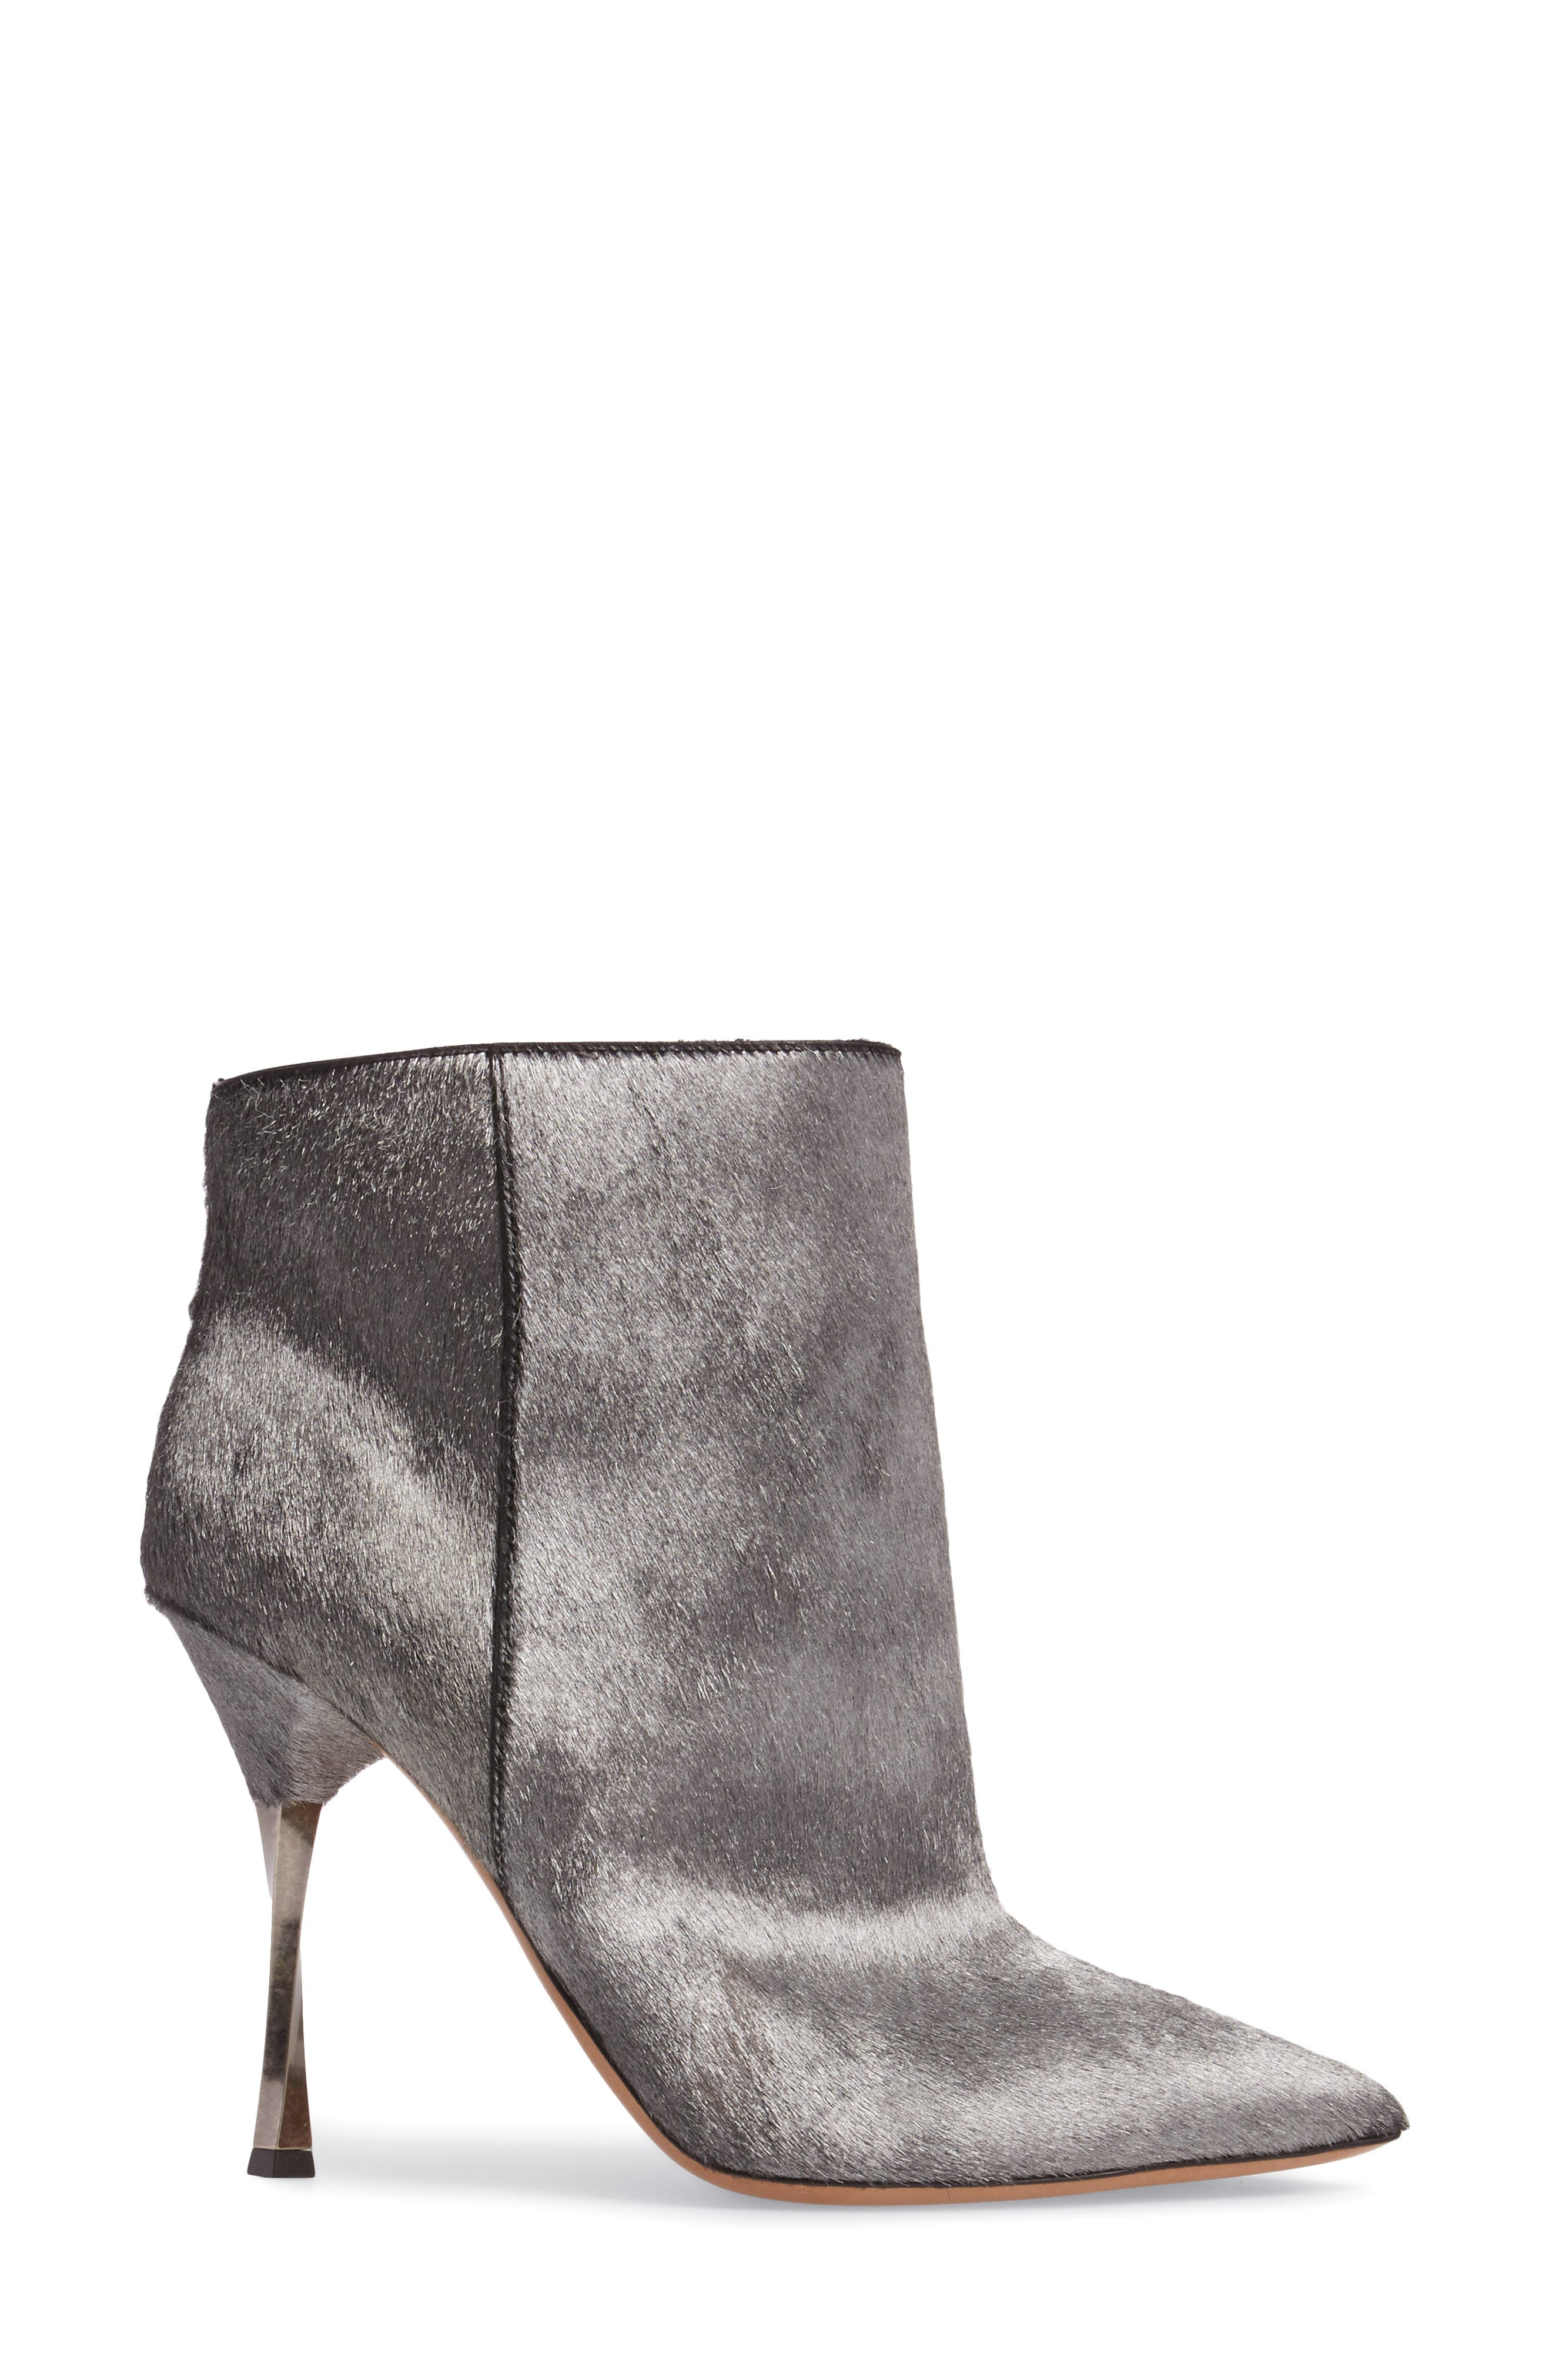 Alternate Image 3  - VALENTINO GARAVANI Genuine Calf Hair Bootie (Women)